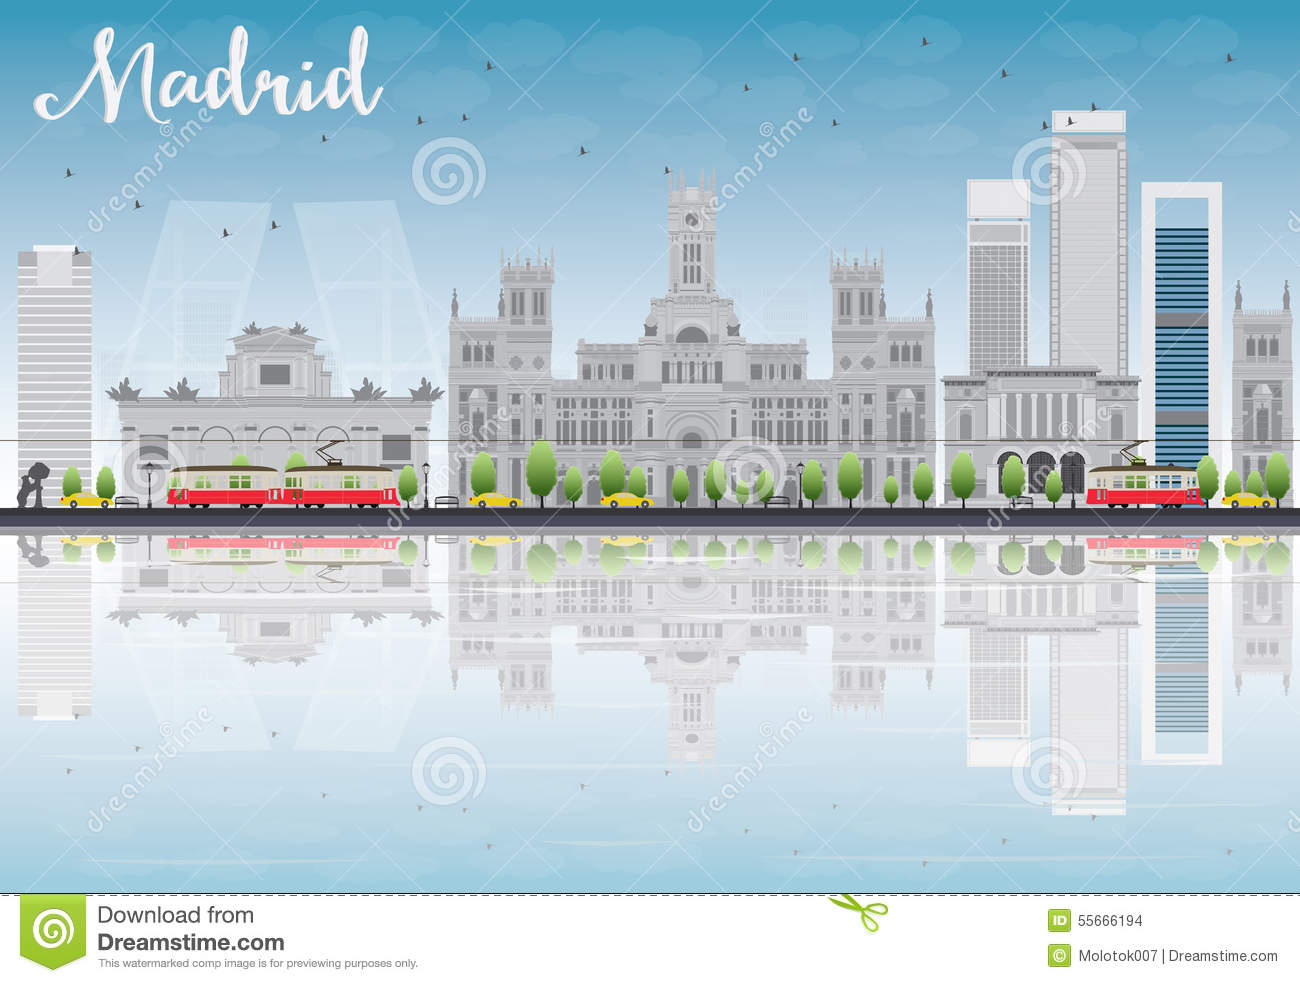 Madrid Skyline with grey buildings, blue sky and reflections.